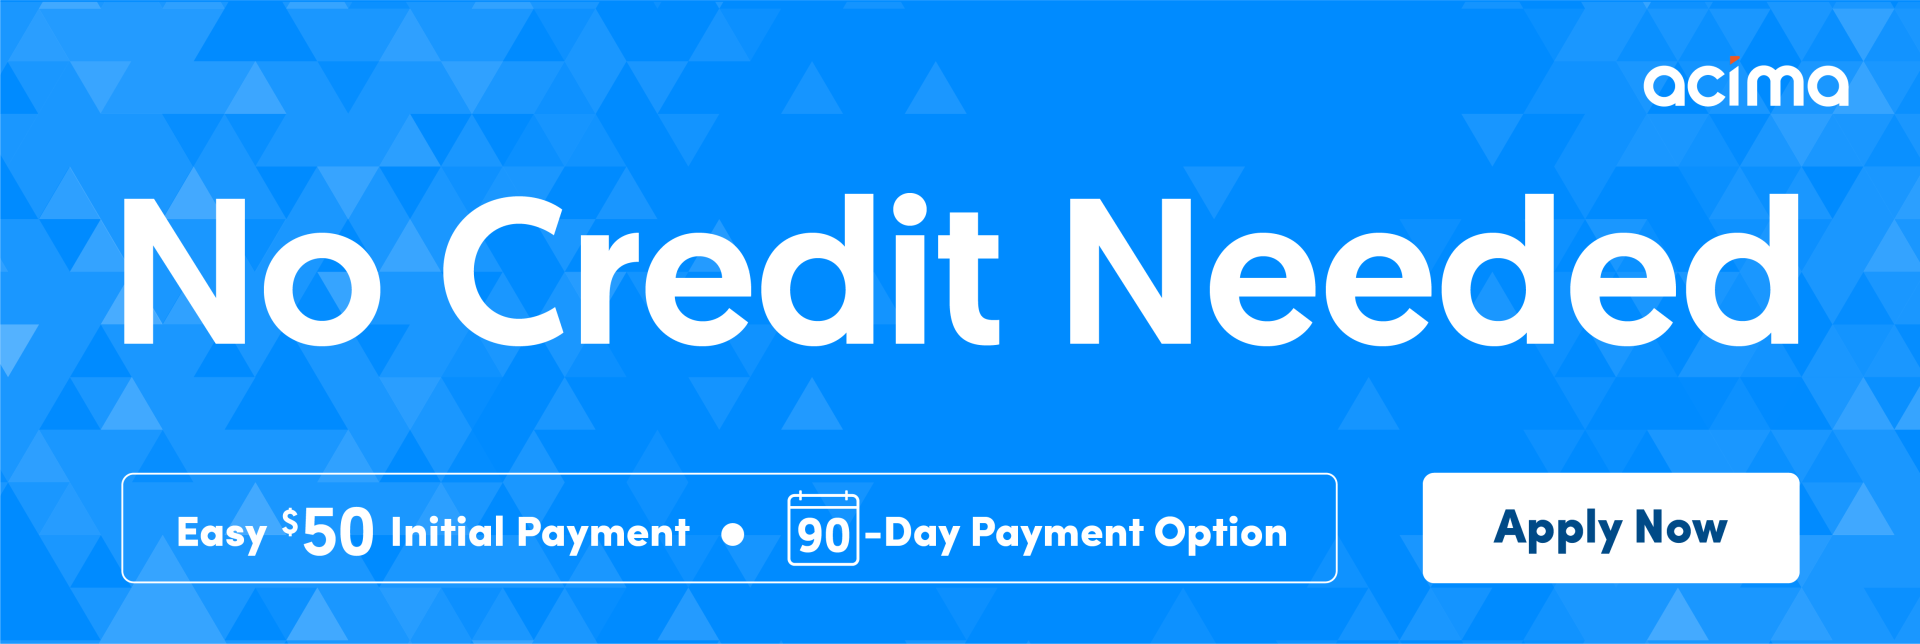 acima credit 90 day payment option